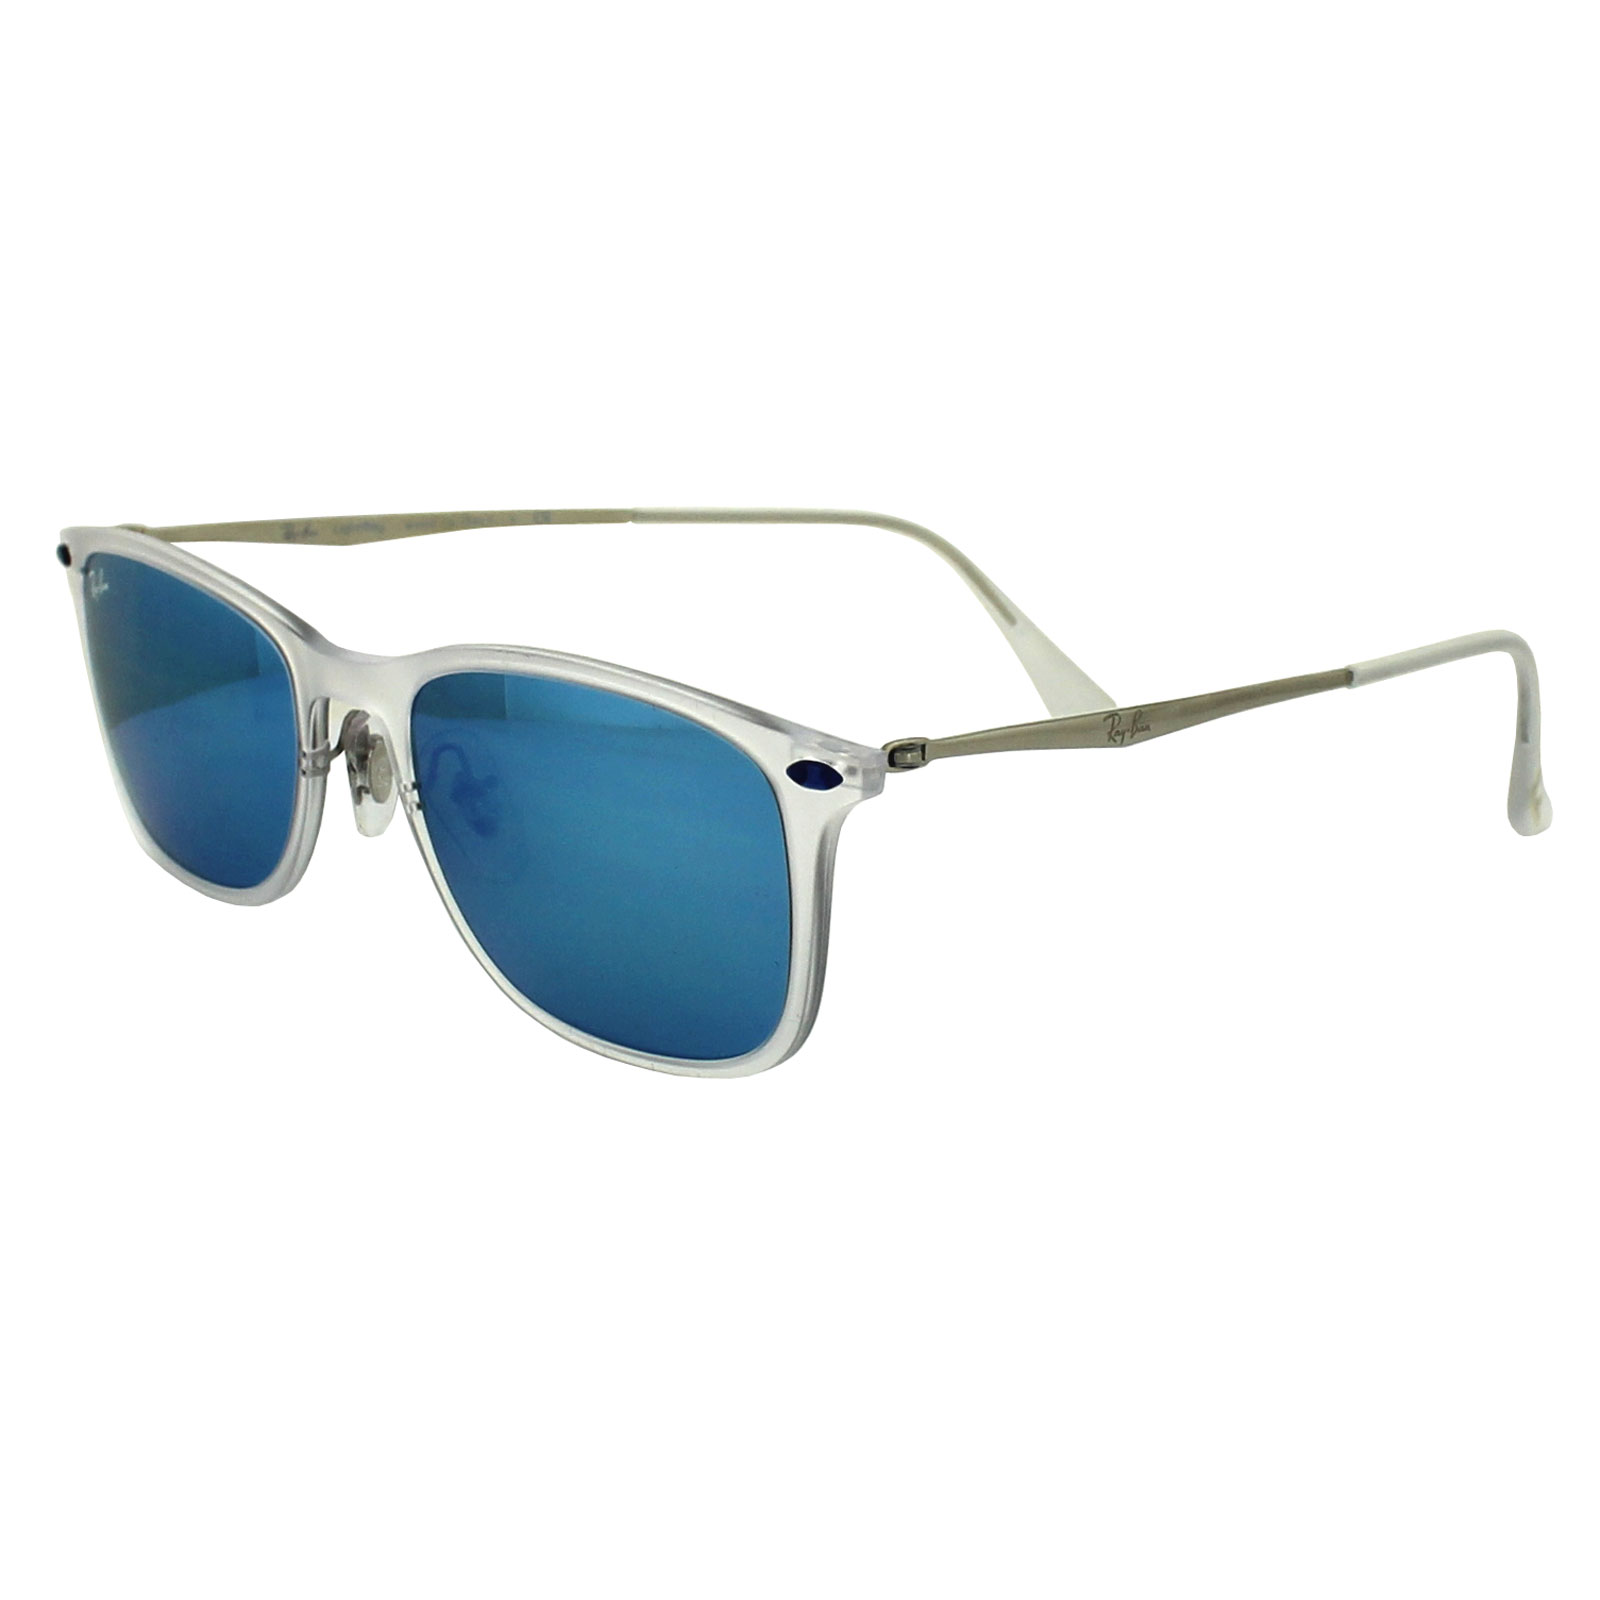 566918ece Cheap Ray-Ban New Wayfarer Light Ray 4225 Sunglasses - Discounted ...